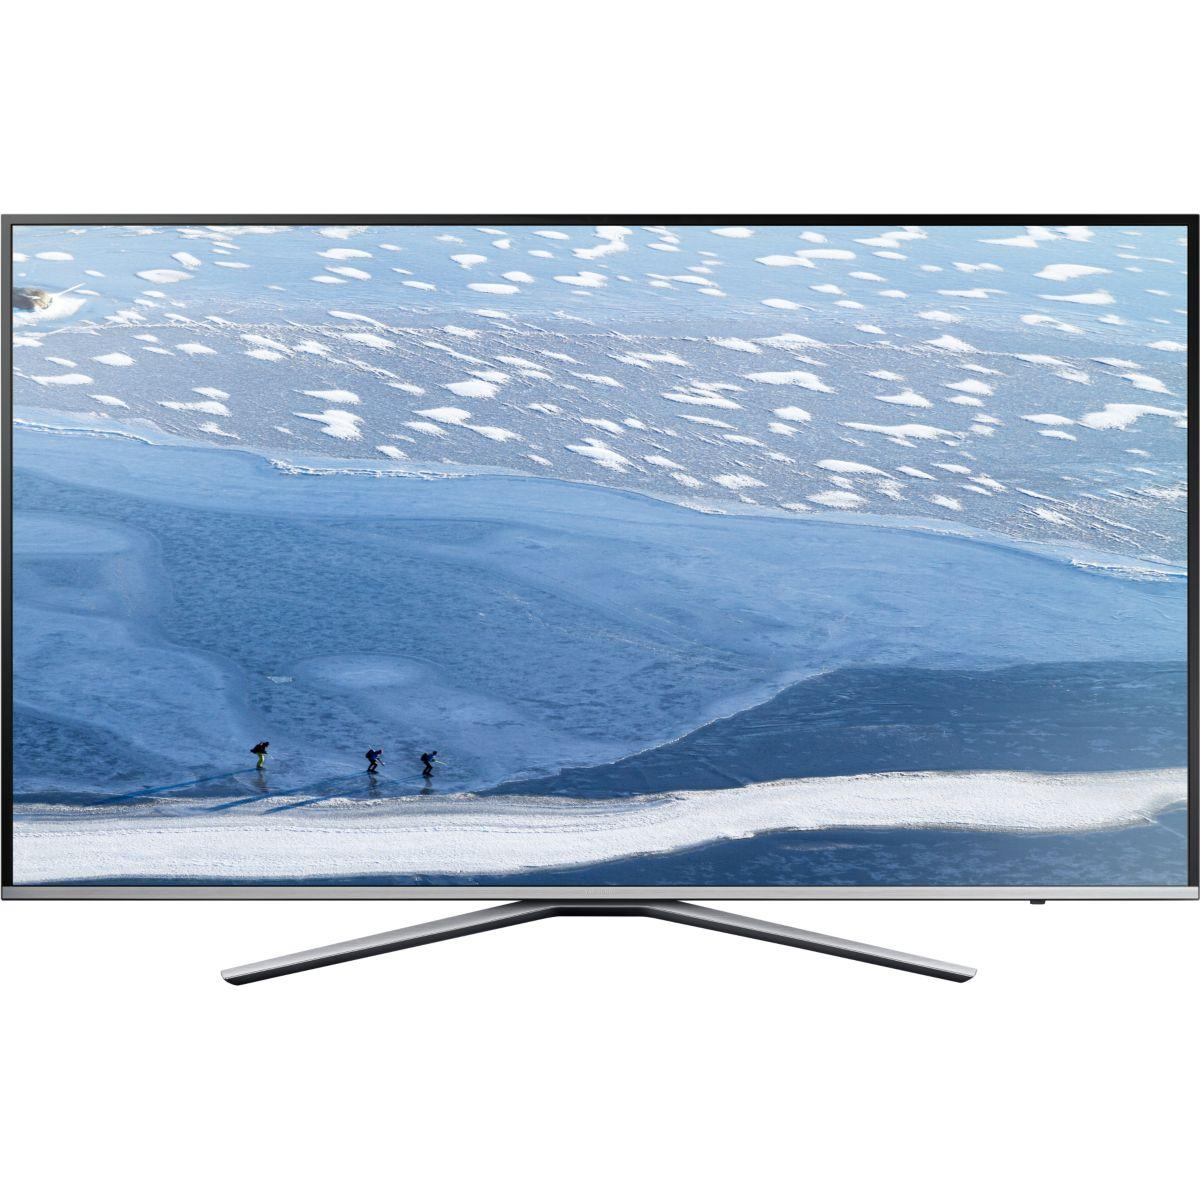 Tv samsung ue40ku6400 1500 pqi smart tv (photo)